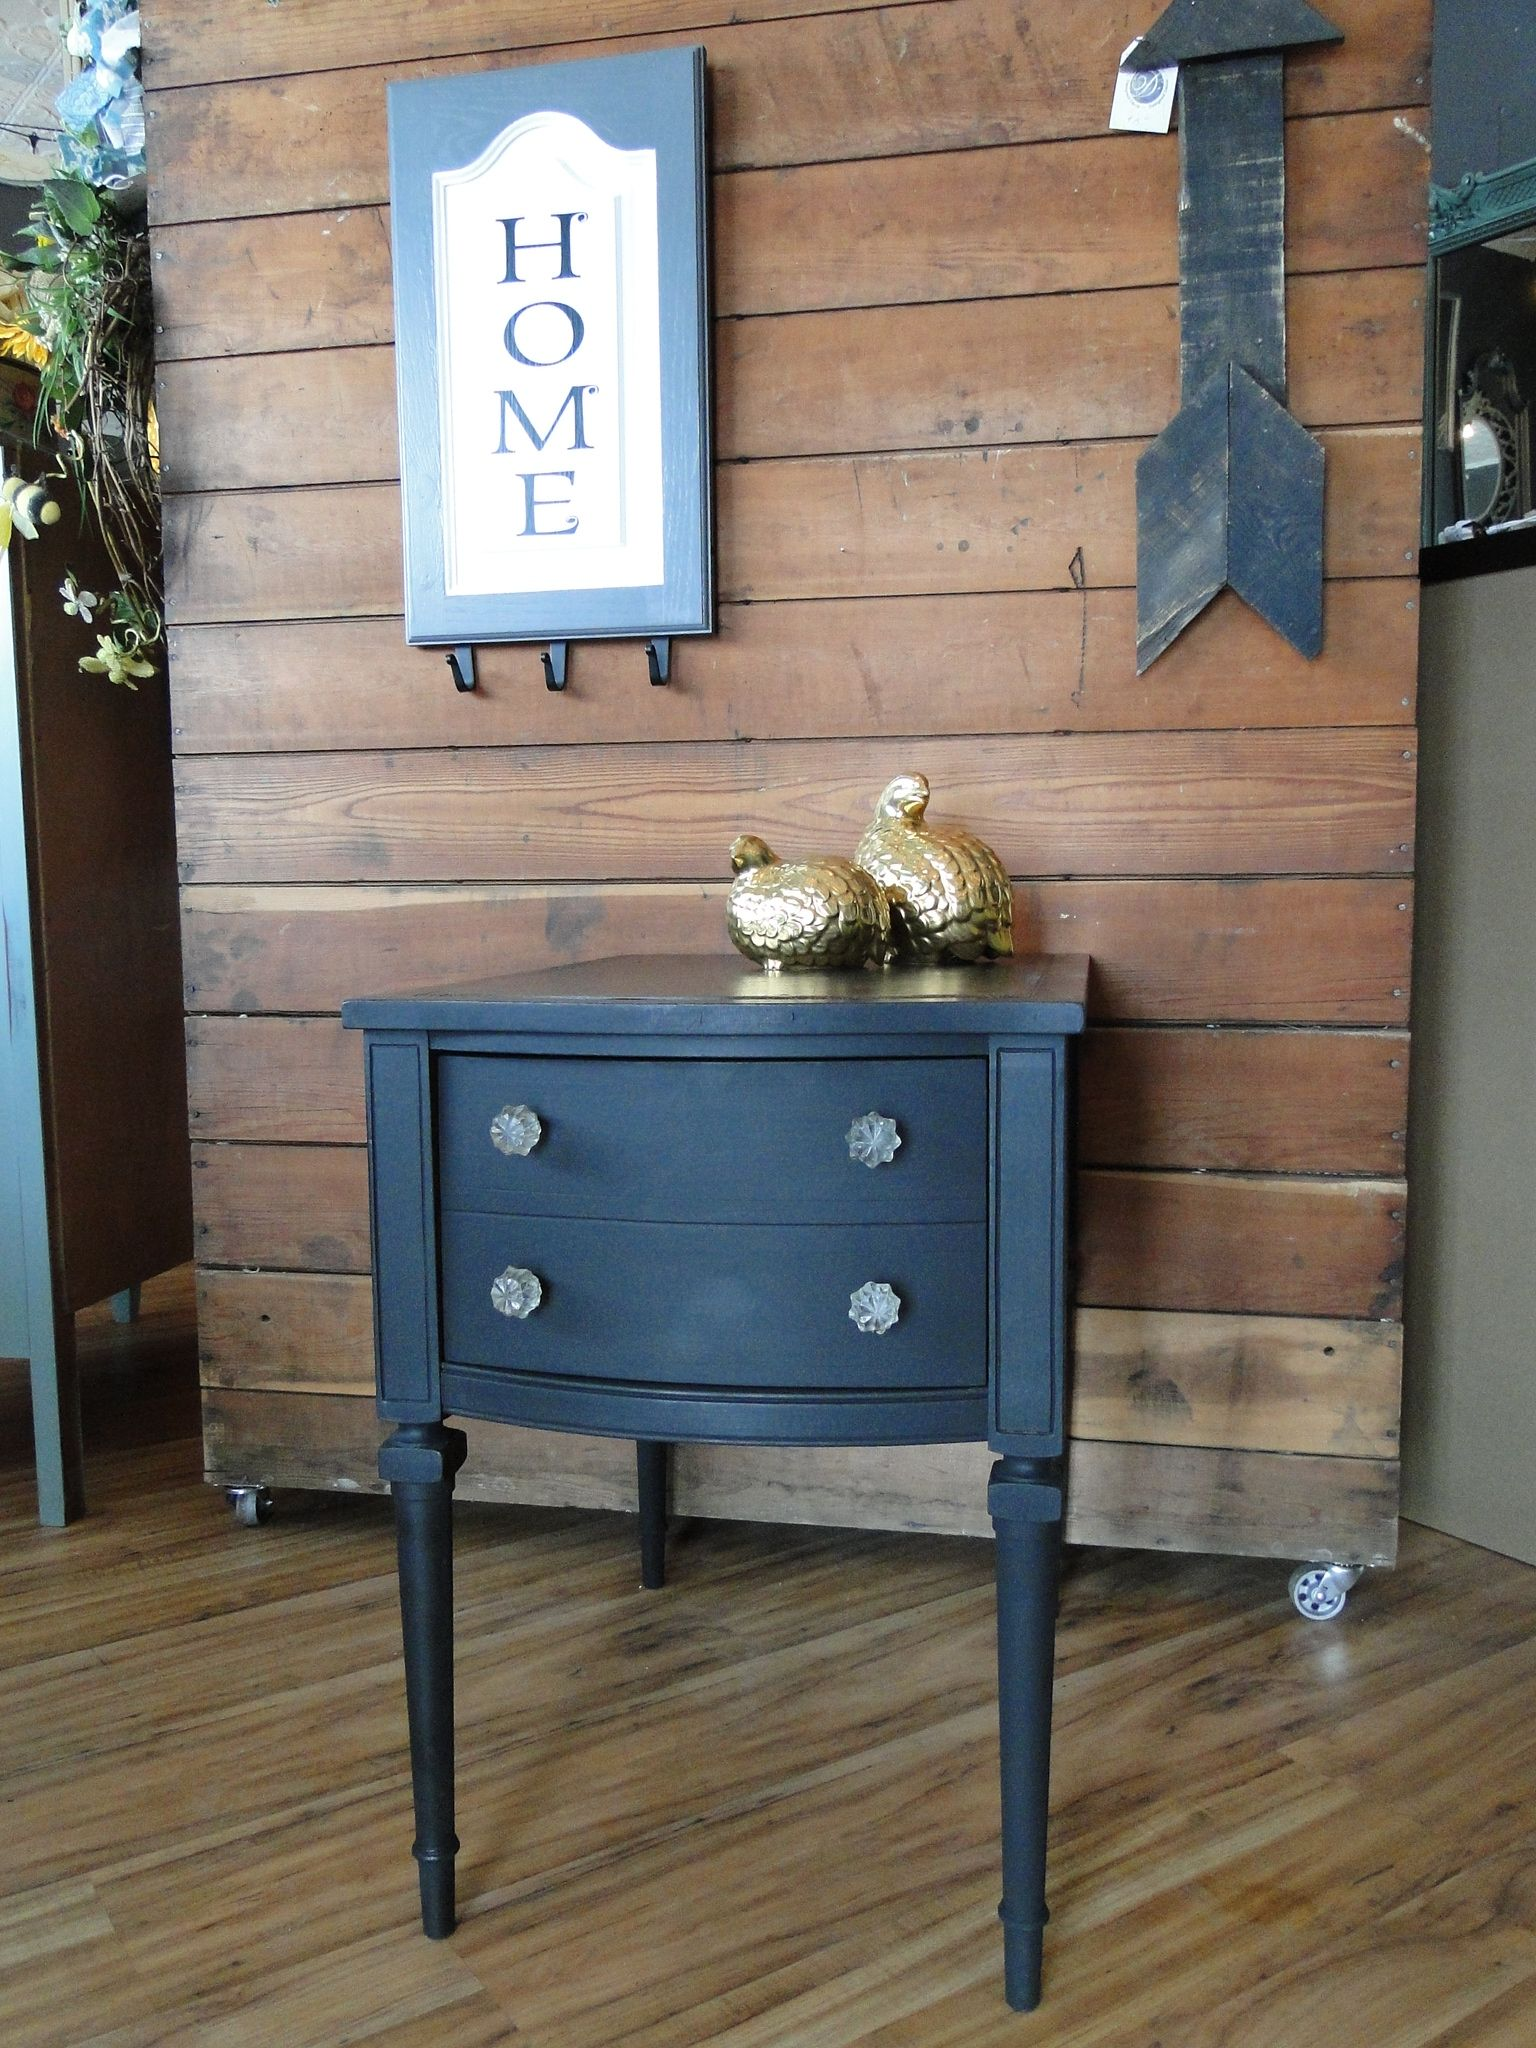 This end table with a drawer was given an uptown treatment with black paint and glass knobs. The top was decoupaged with black and gold floral paper.